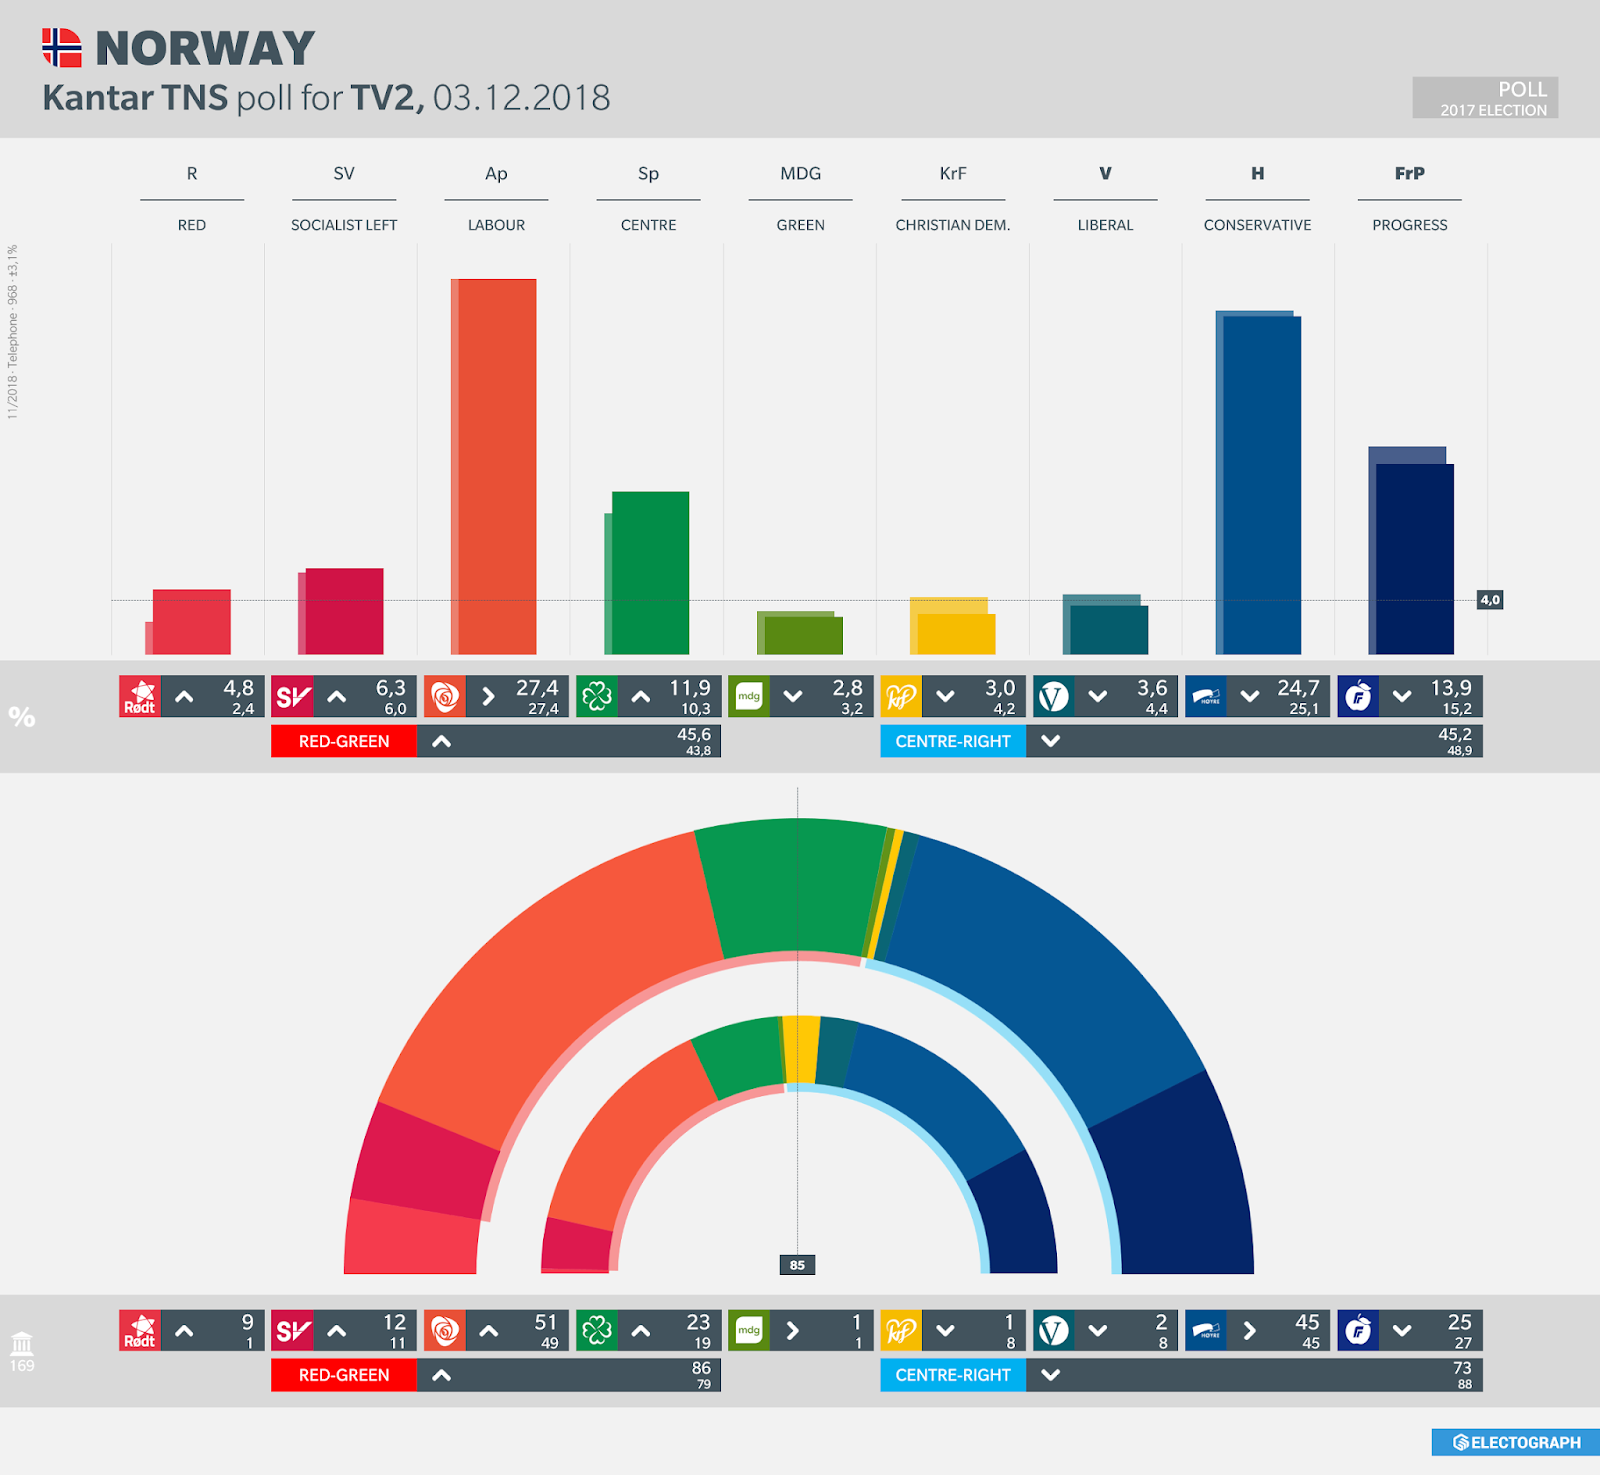 NORWAY: Kantar TNS poll chart for TV2, 3 December 2018